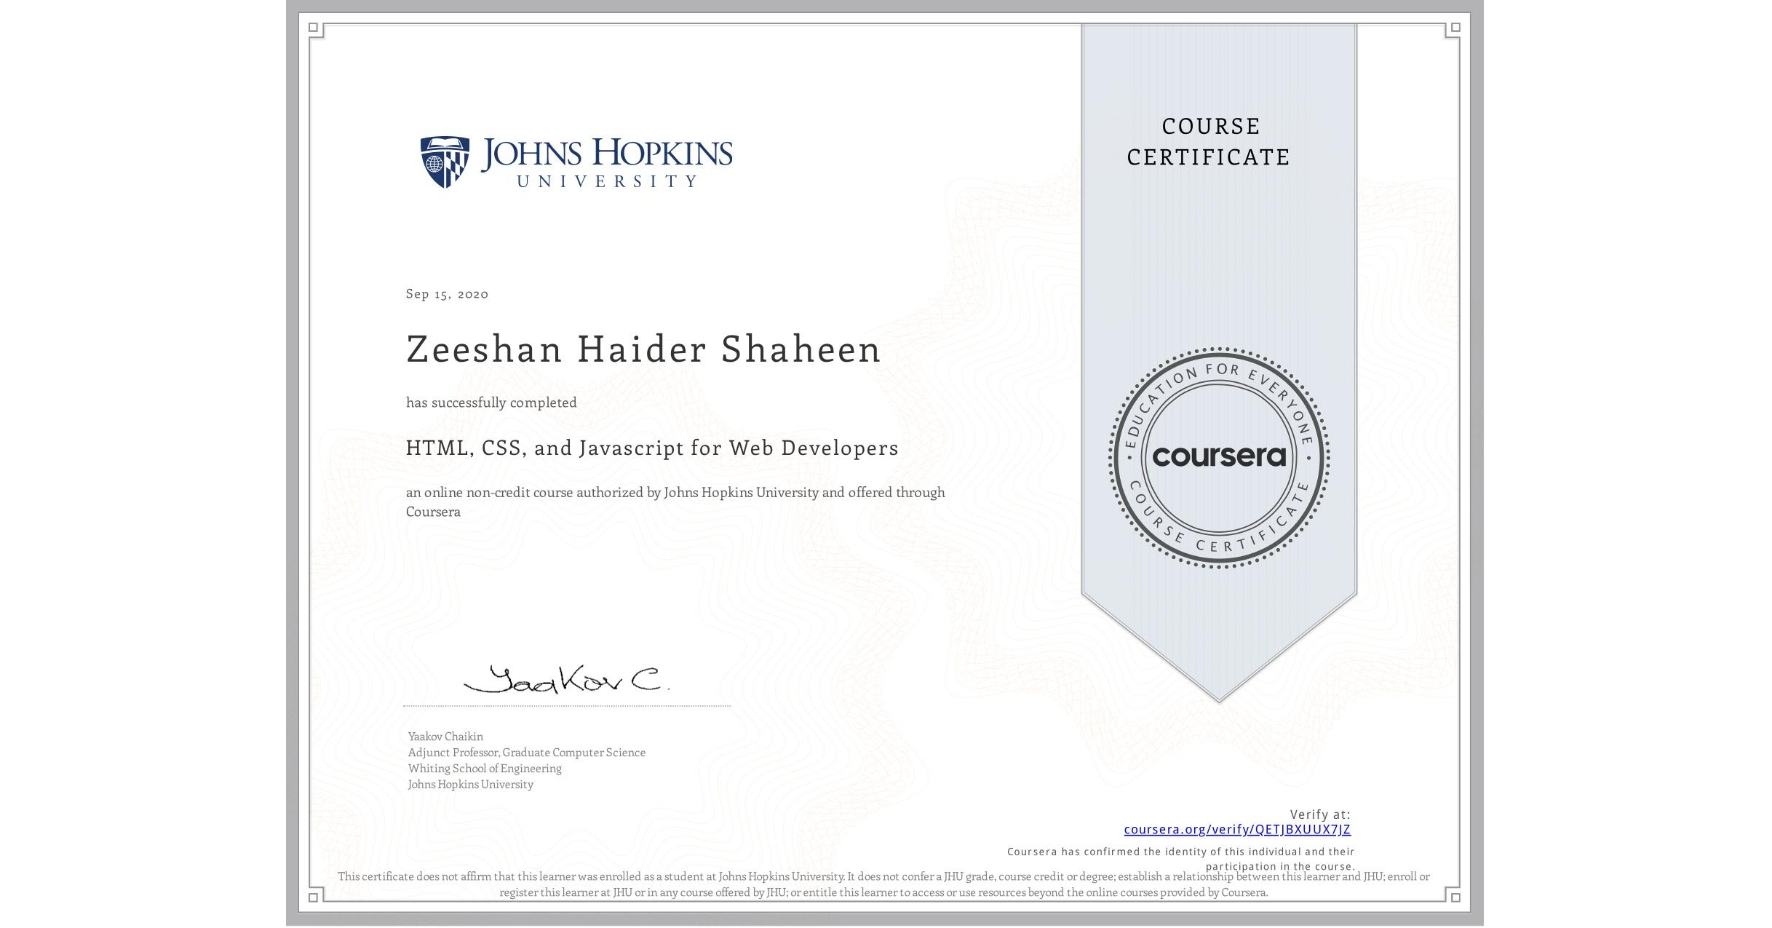 View certificate for Zeeshan Haider Shaheen, HTML, CSS, and Javascript for Web Developers, an online non-credit course authorized by Johns Hopkins University and offered through Coursera